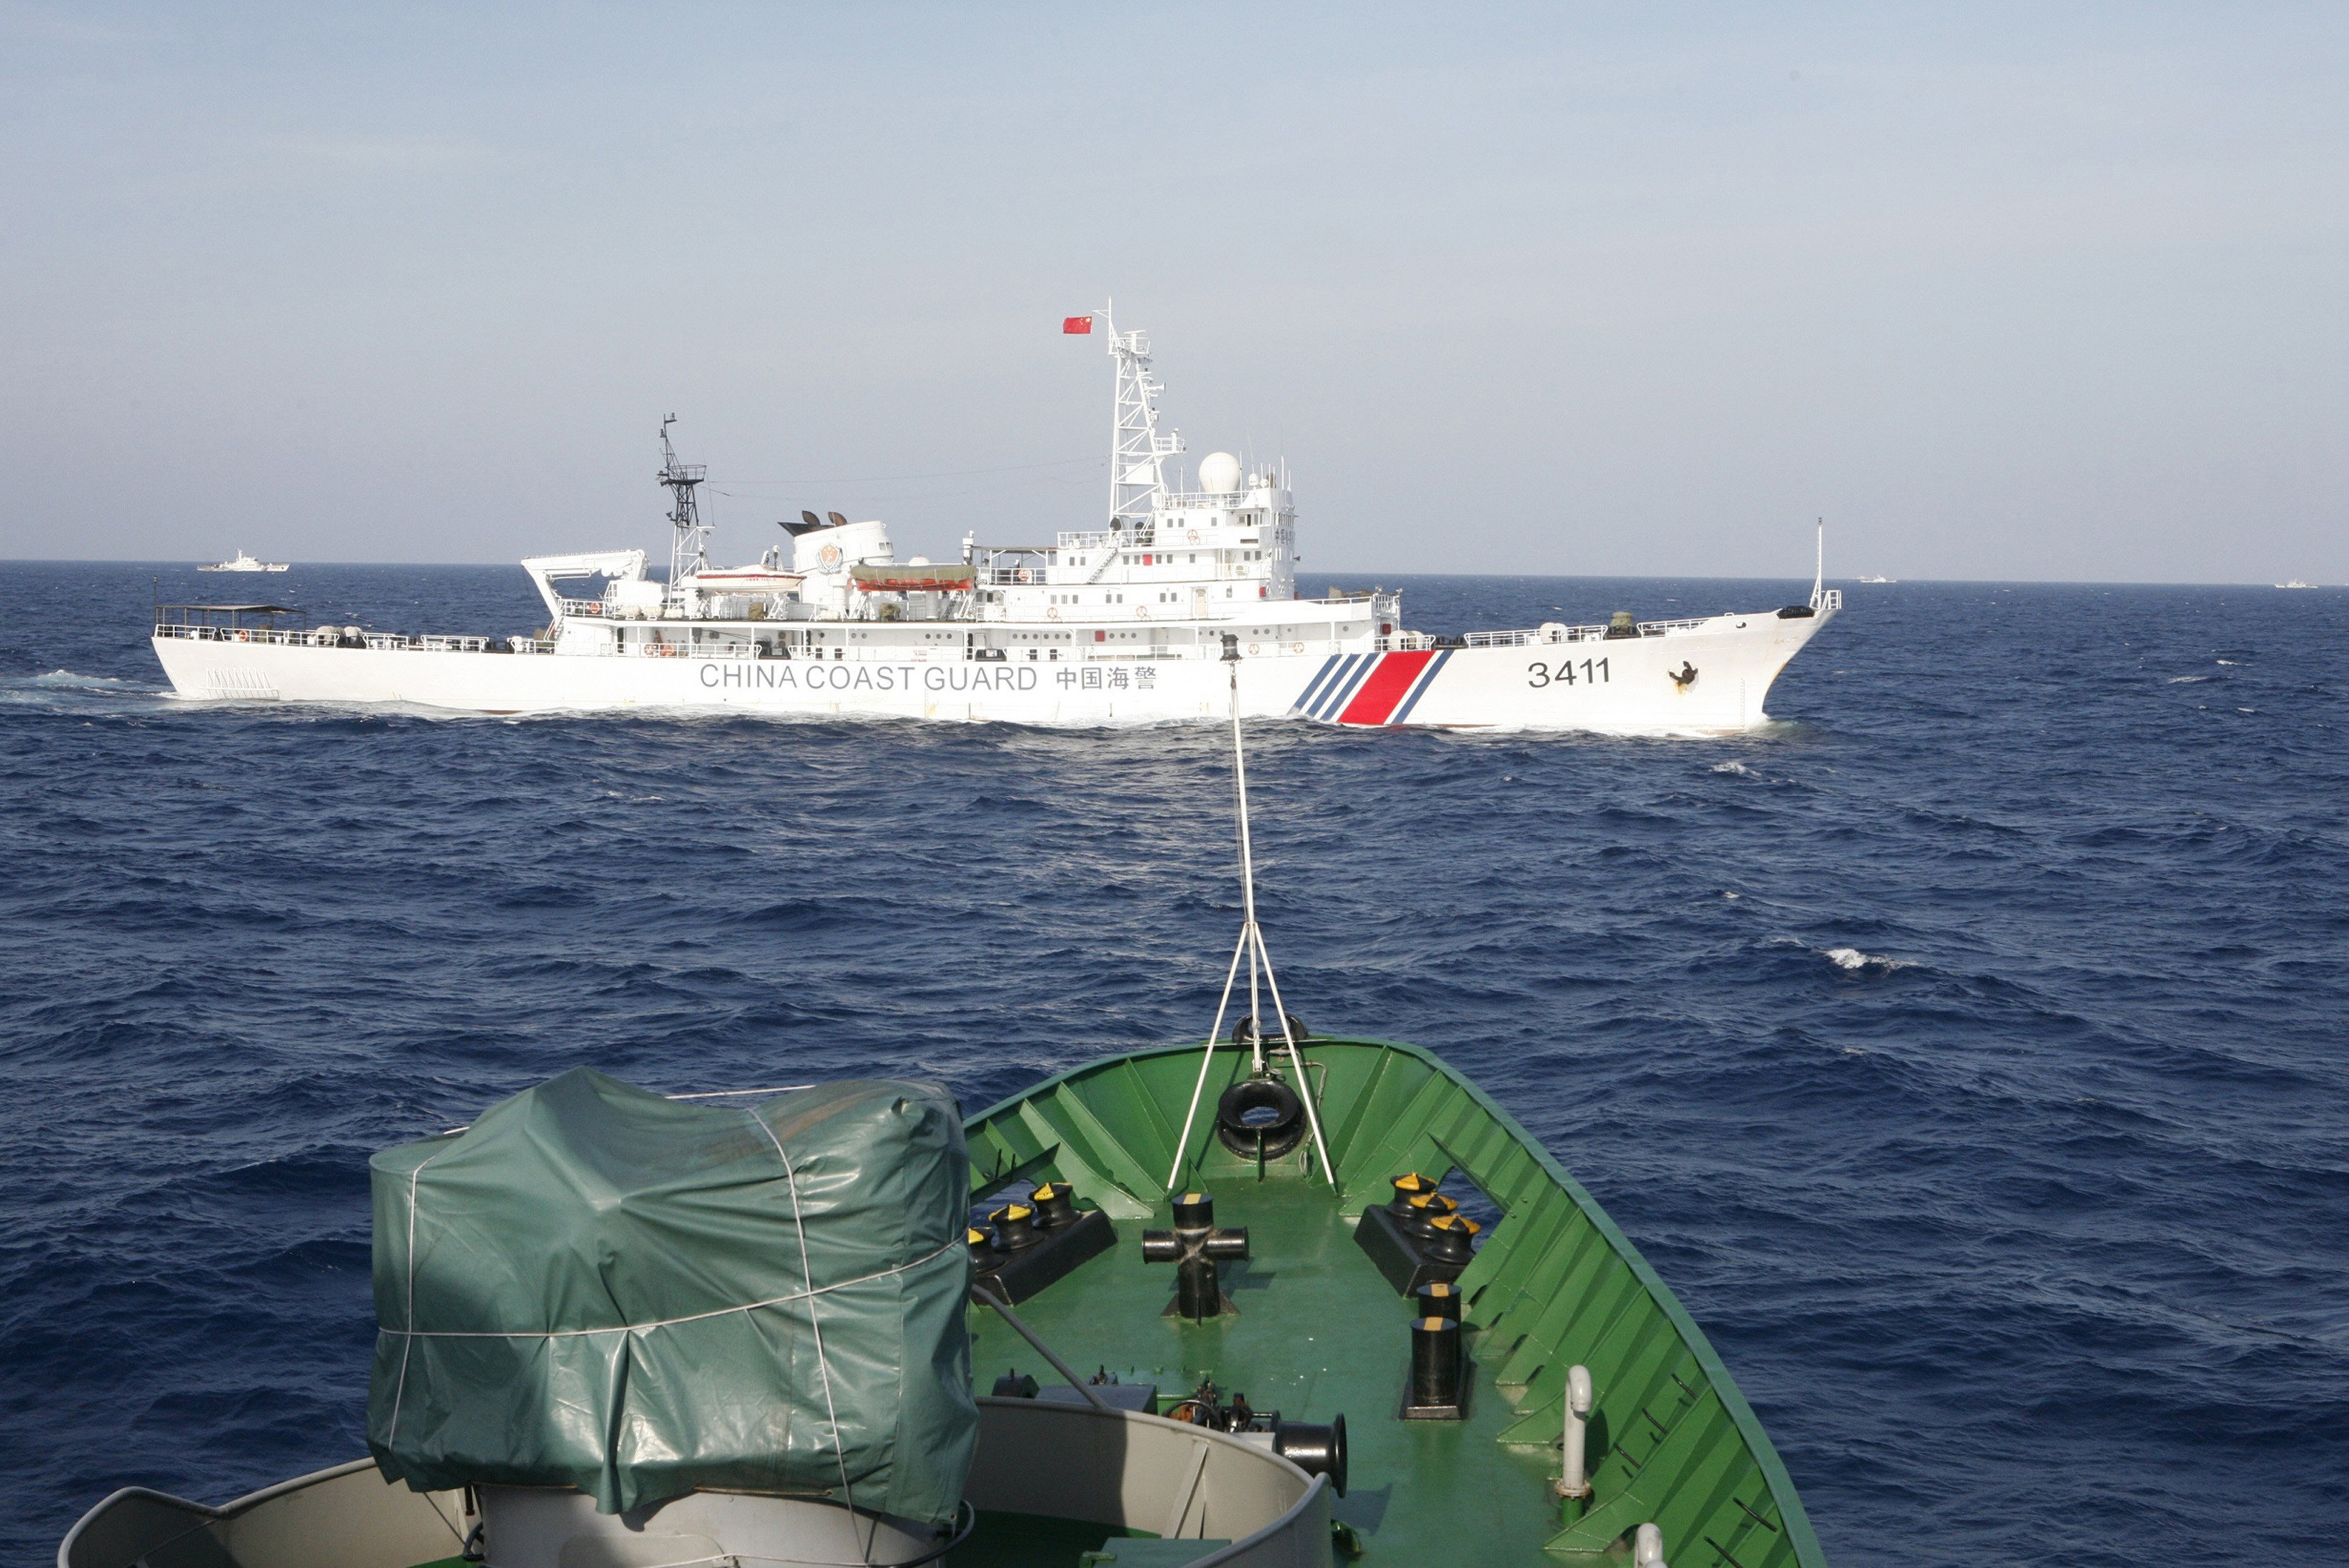 A ship (top) of Chinese Coast Guard is seen near a ship of Vietnam Marine Guard in the South China Sea, about 210 km (130 miles) off shore of Vietnam May 14, 2014. Vietnamese ships were followed by Chinese vessels as they neared China's oil rig in disputed waters in the South China Sea on Wednesday, Vietnam's Coast Guard said. Vietnam has condemned as illegal the operation of a Chinese deepwater drilling rig in what Vietnam says is its territorial water in the South China Sea and has told China's state-run oil company to remove it. China has said the rig was operating completely within its waters. REUTERS/Nguyen Minh (POLITICS MARITIME ENERGY) - RTR3P5C6